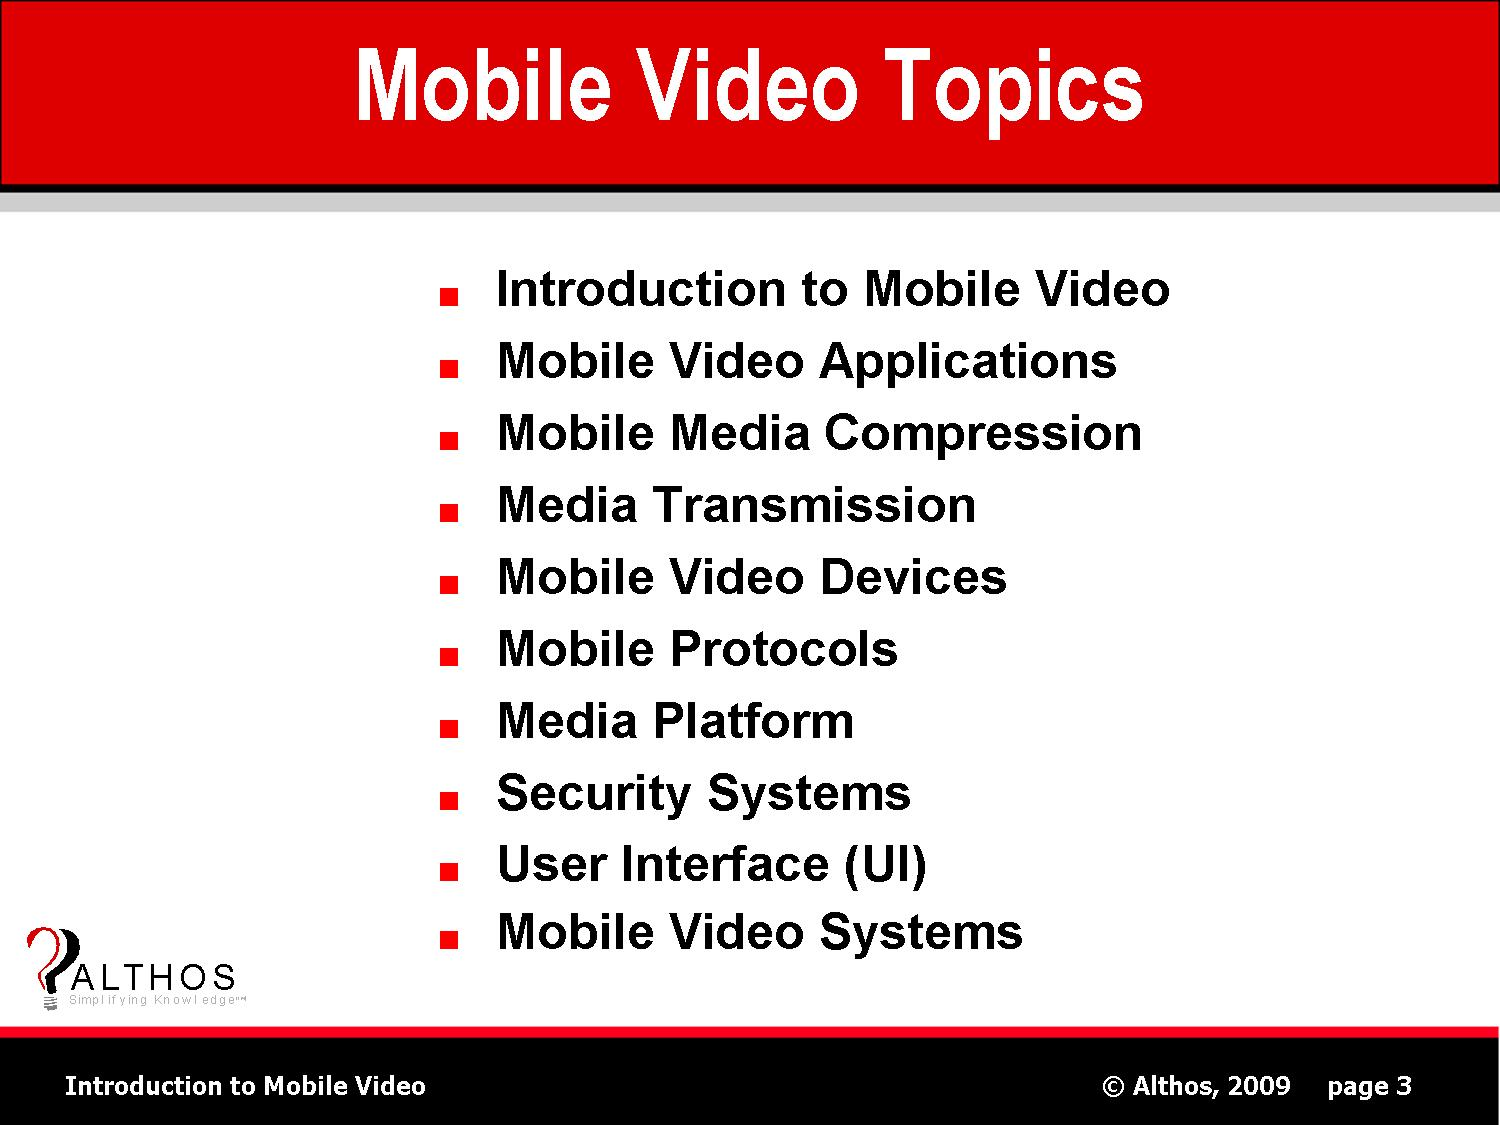 Mobile Video Topics Slide Image